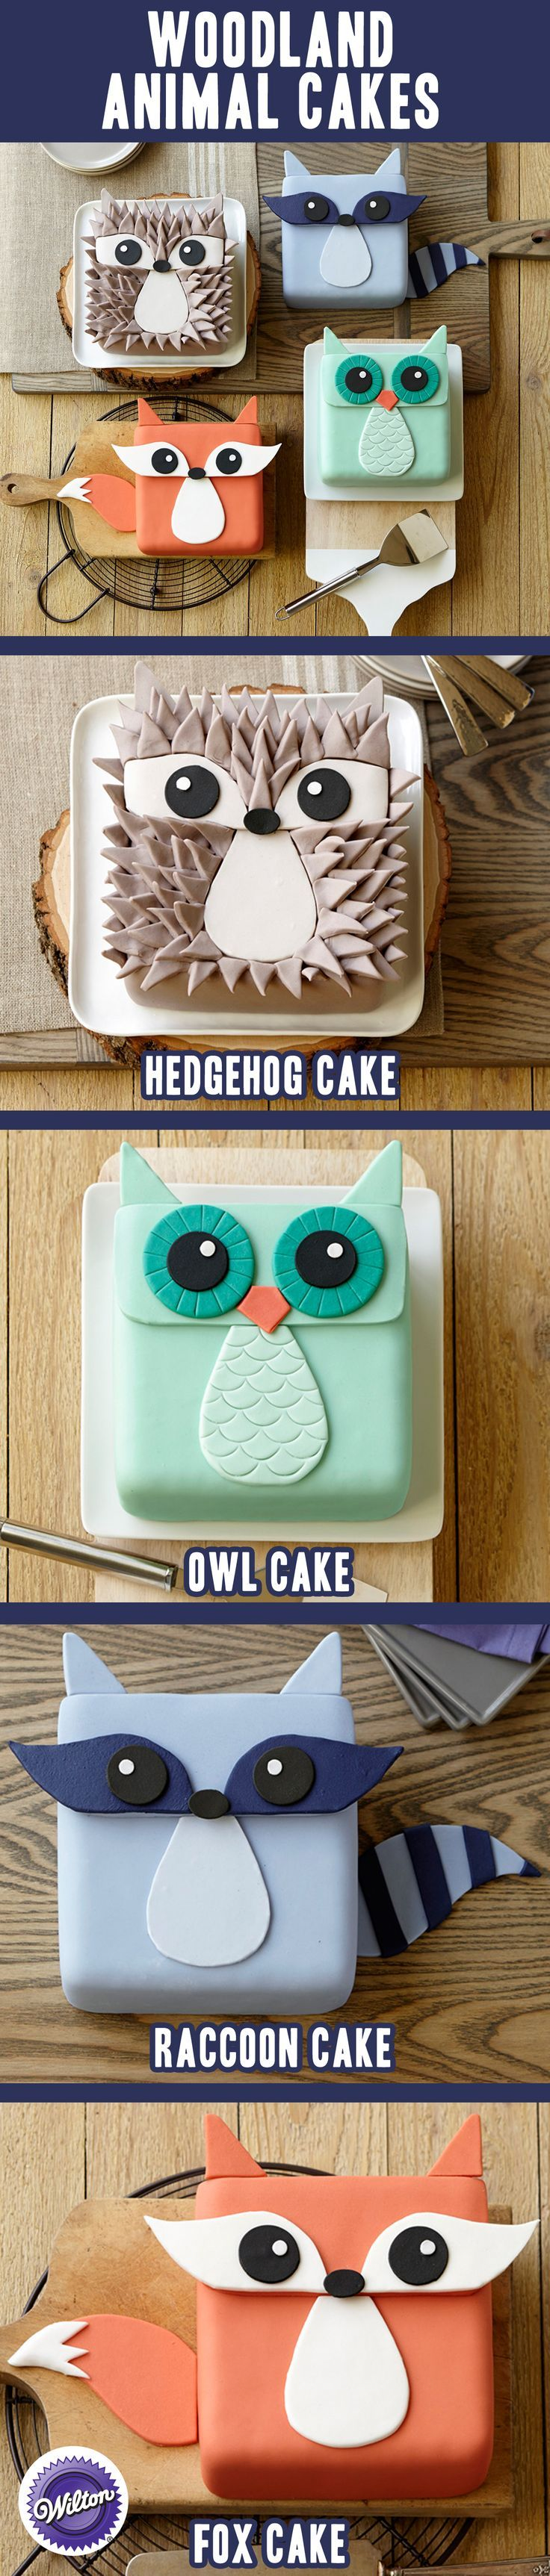 nice Use a square pan to make four different fondant Woodland Animal Cakes...